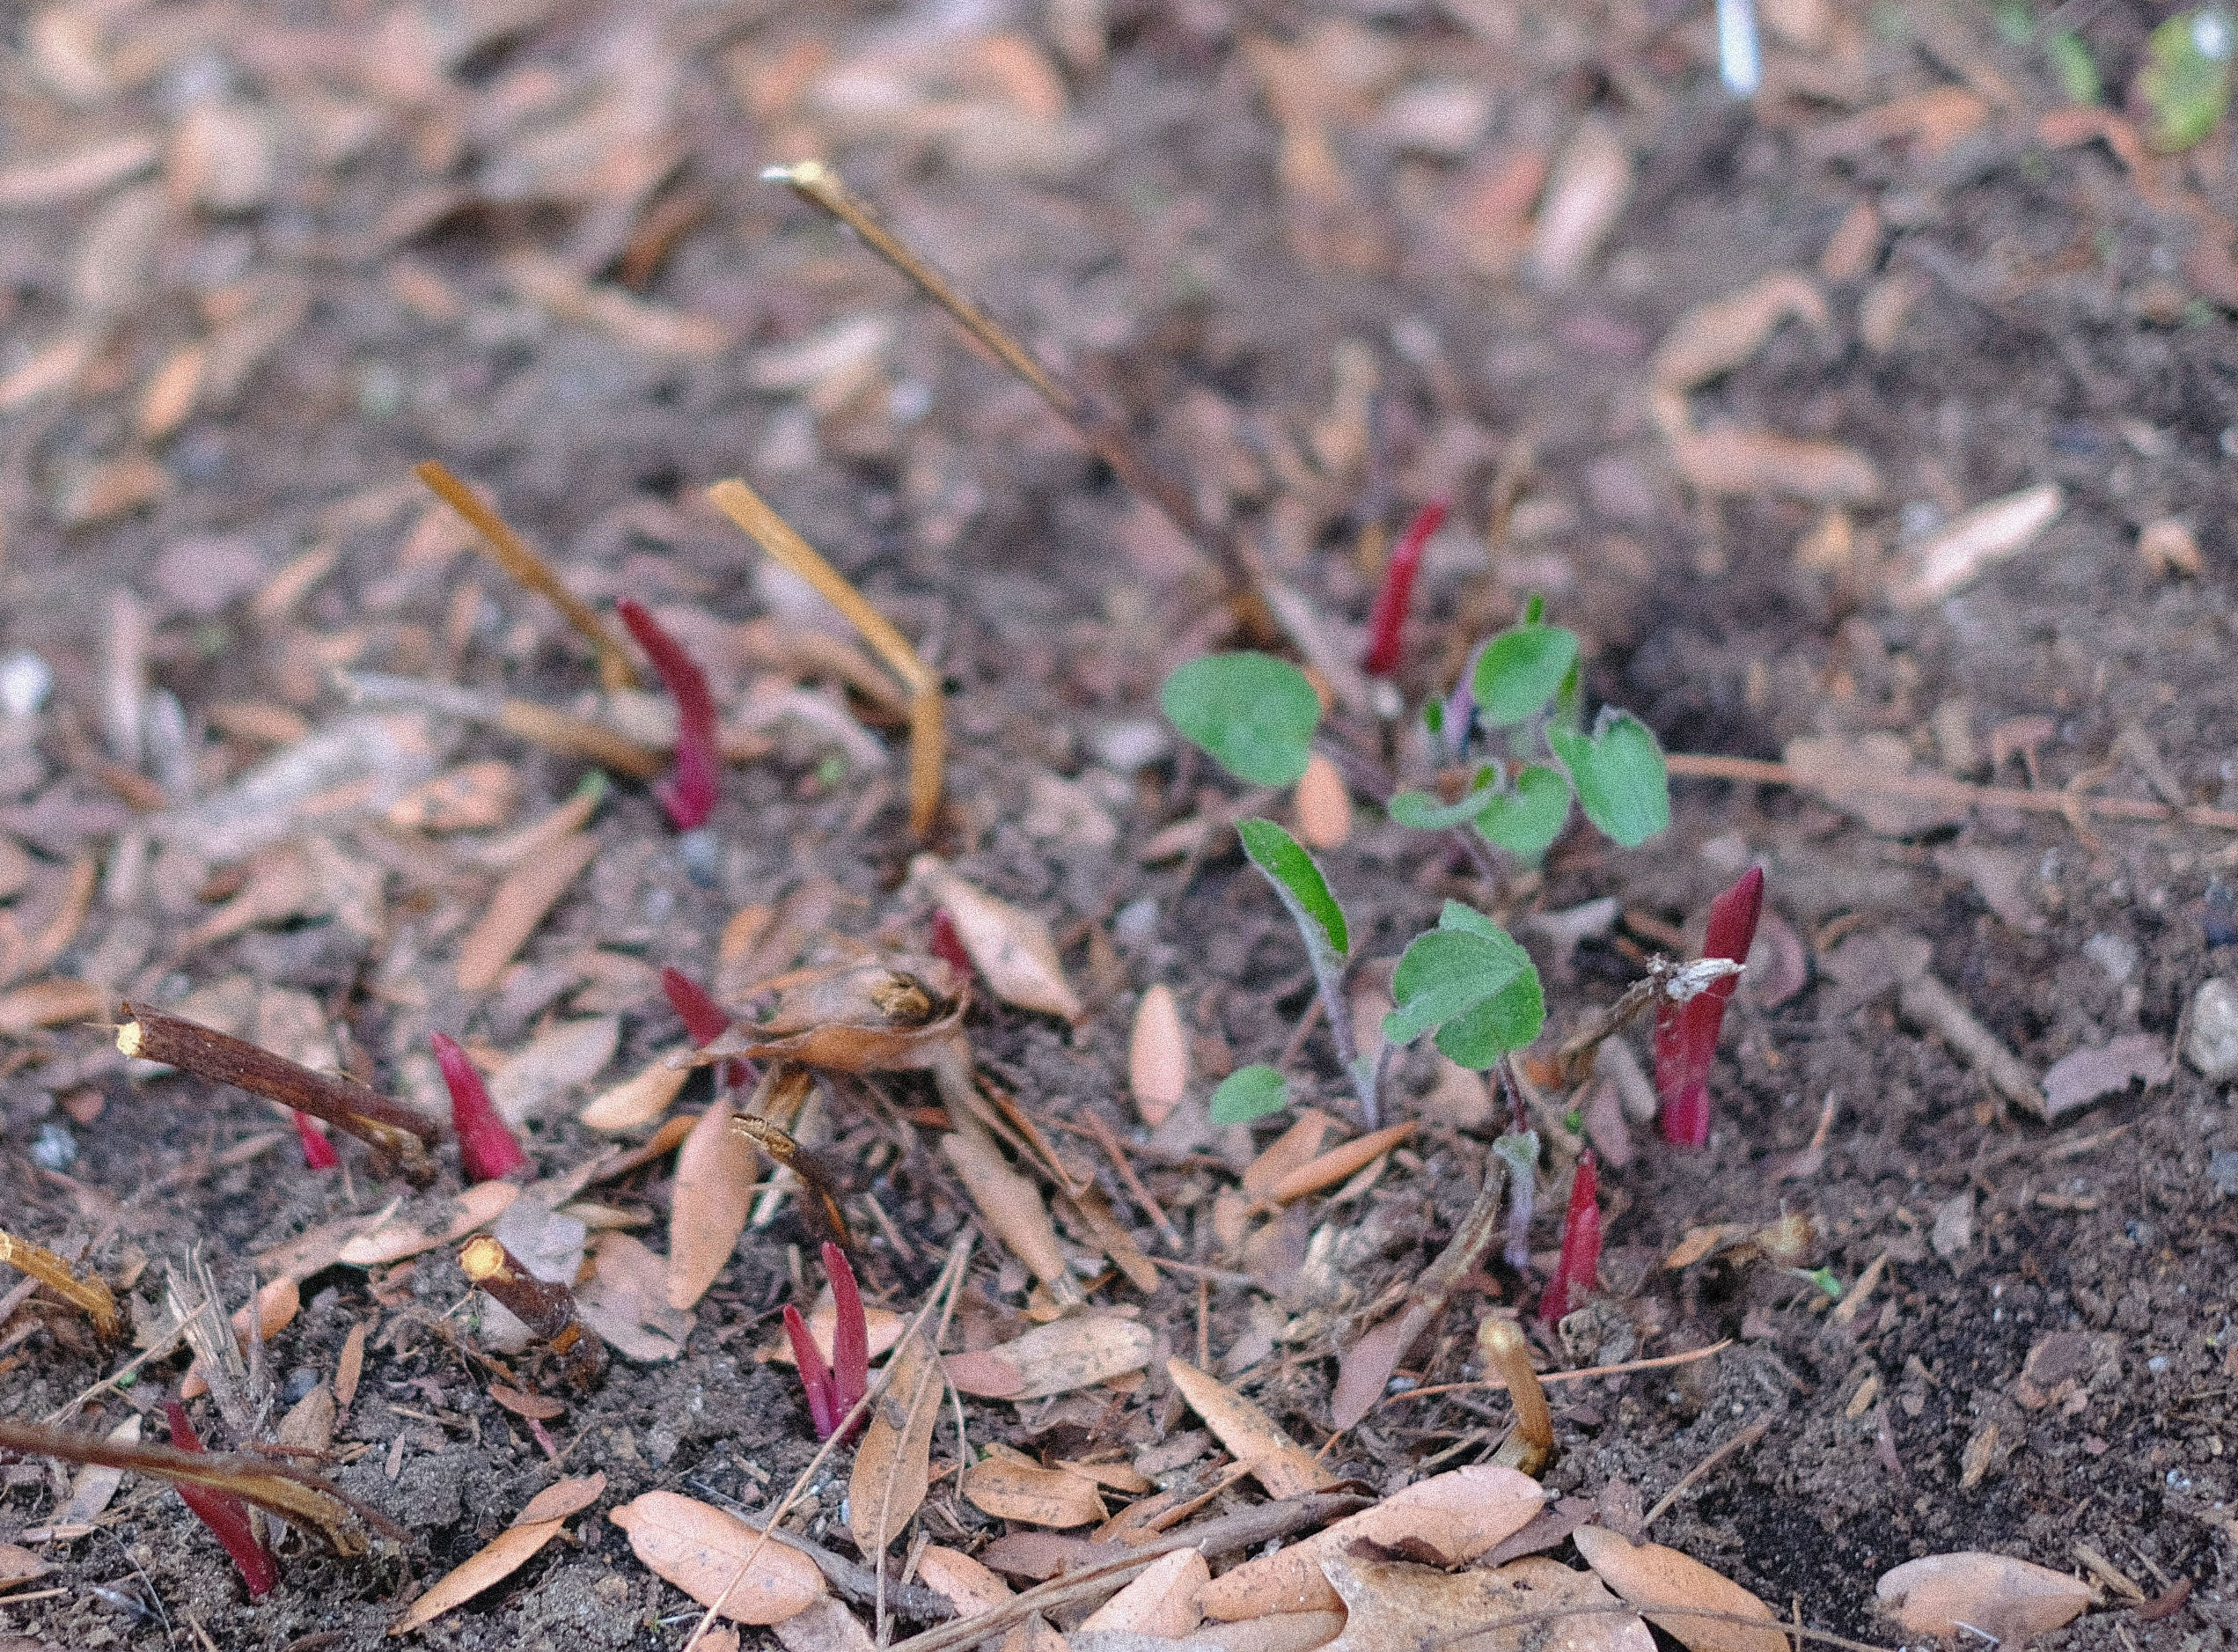 Peony shoots emerge from a garden in South Burlington on Monday, April 22, 2019.